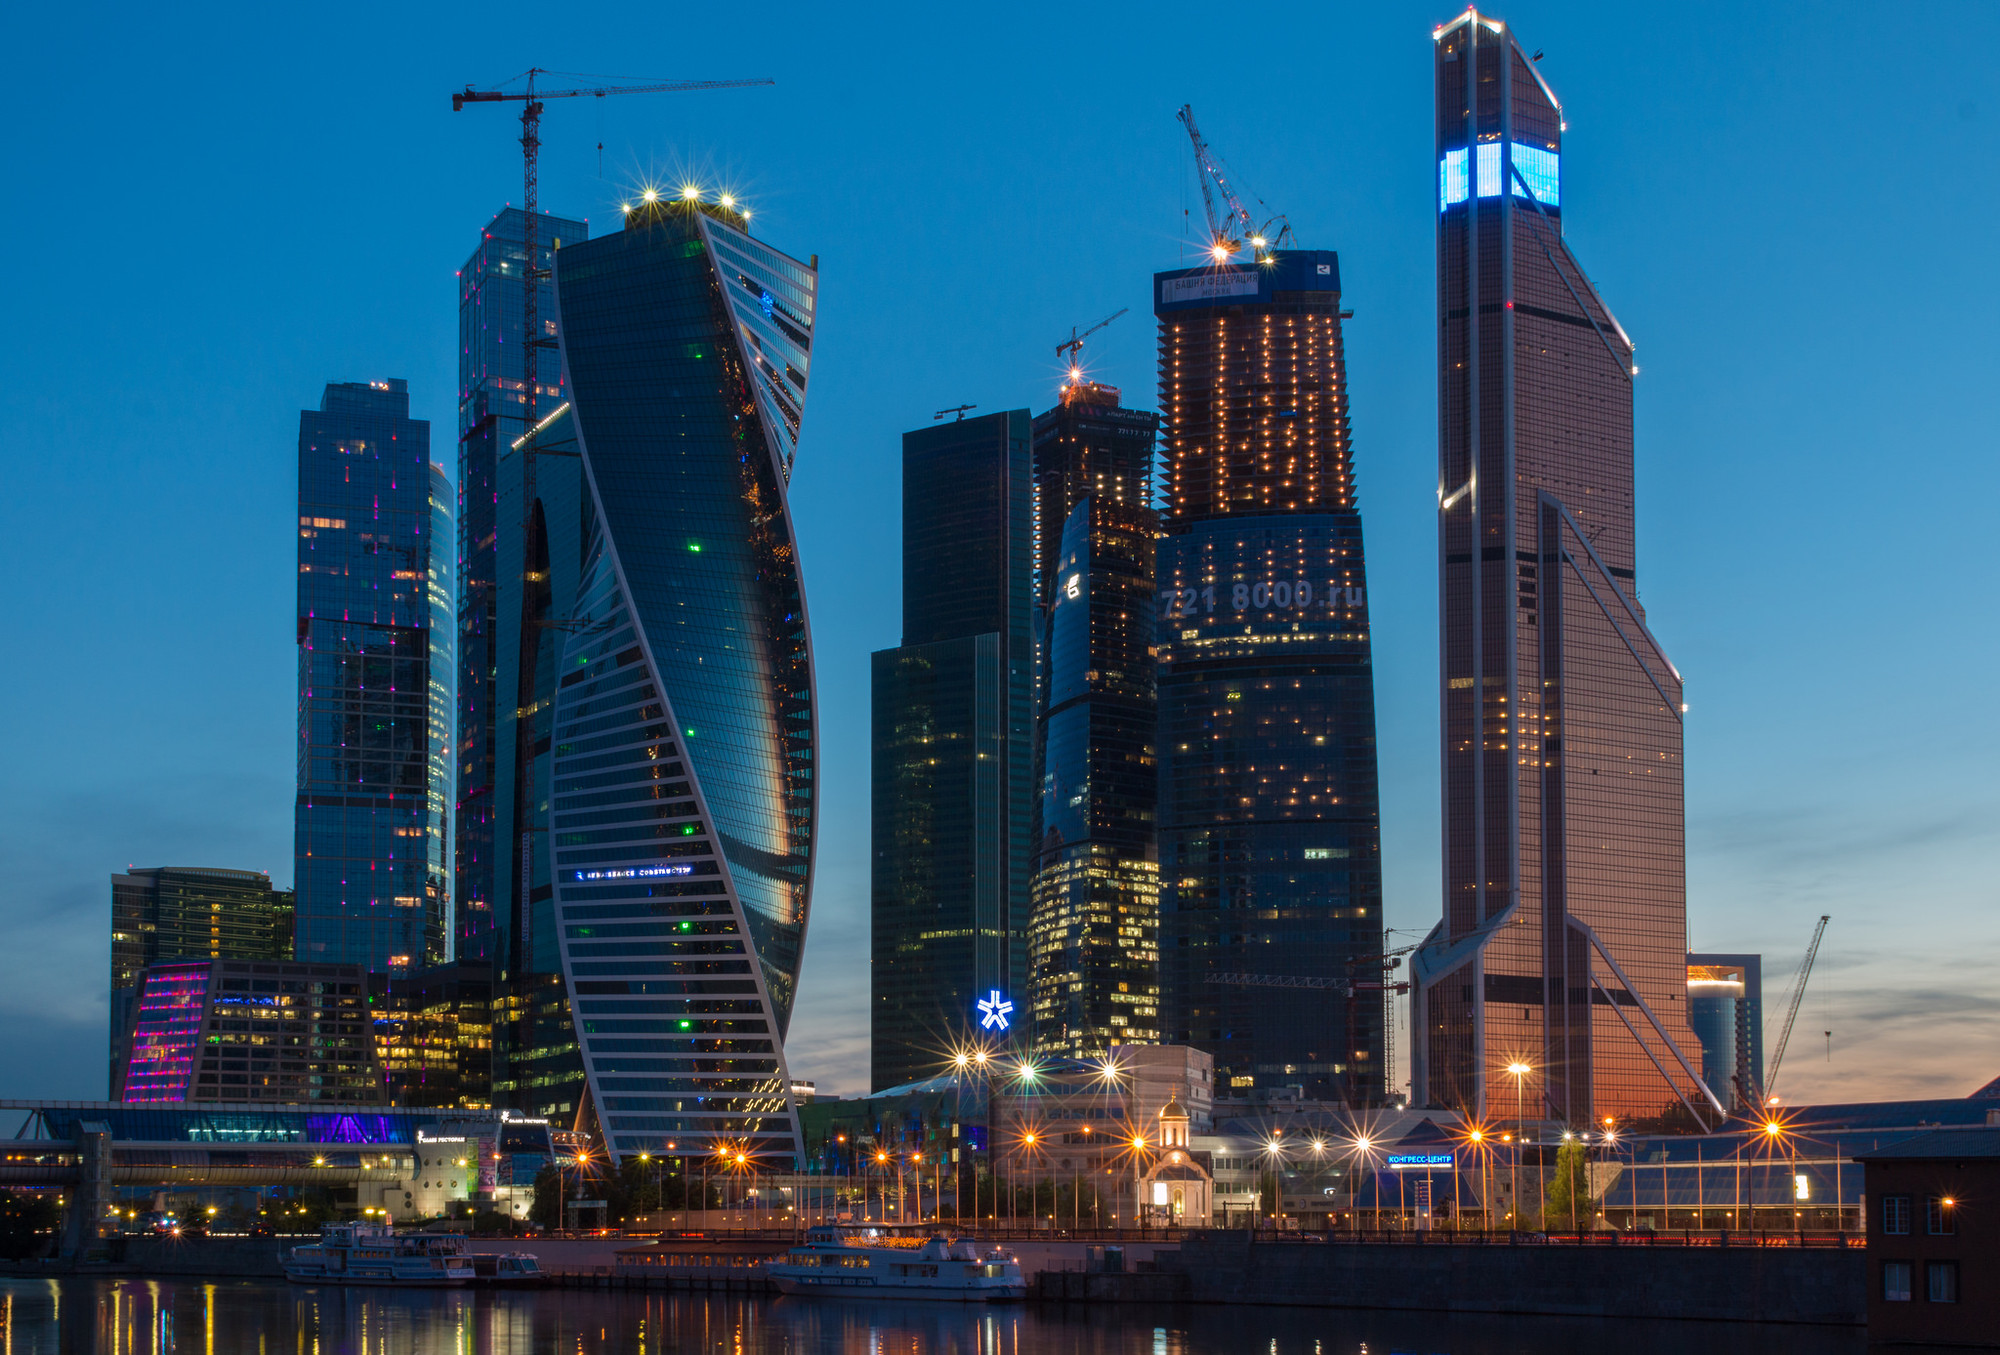 Mercury City: the tallest building in Moscow